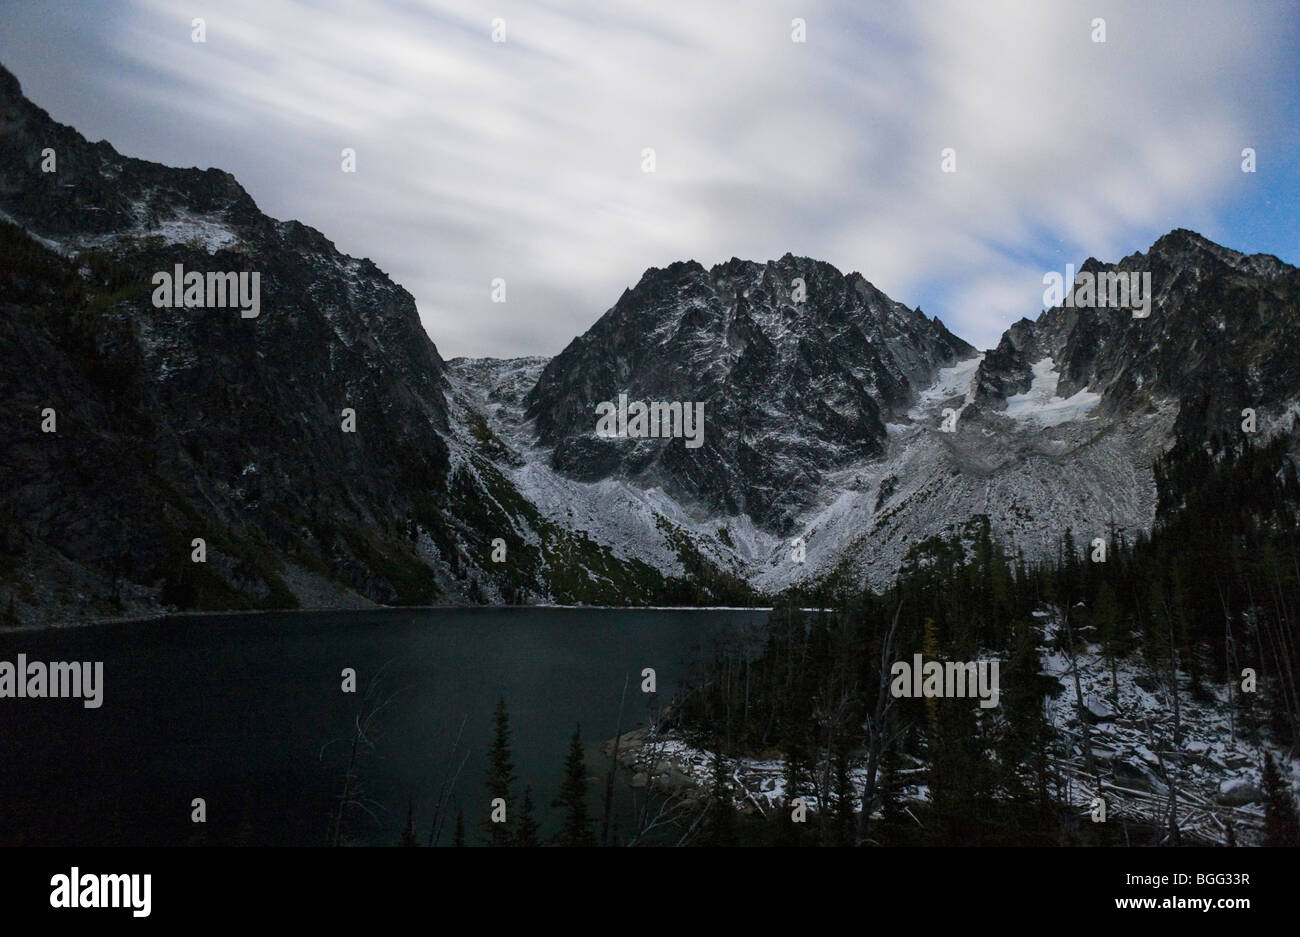 Night time long exposure of streaked clouds over Dragontail Peak, Colchuck Lake, and Colchuck Peaks, Washington - Stock Image